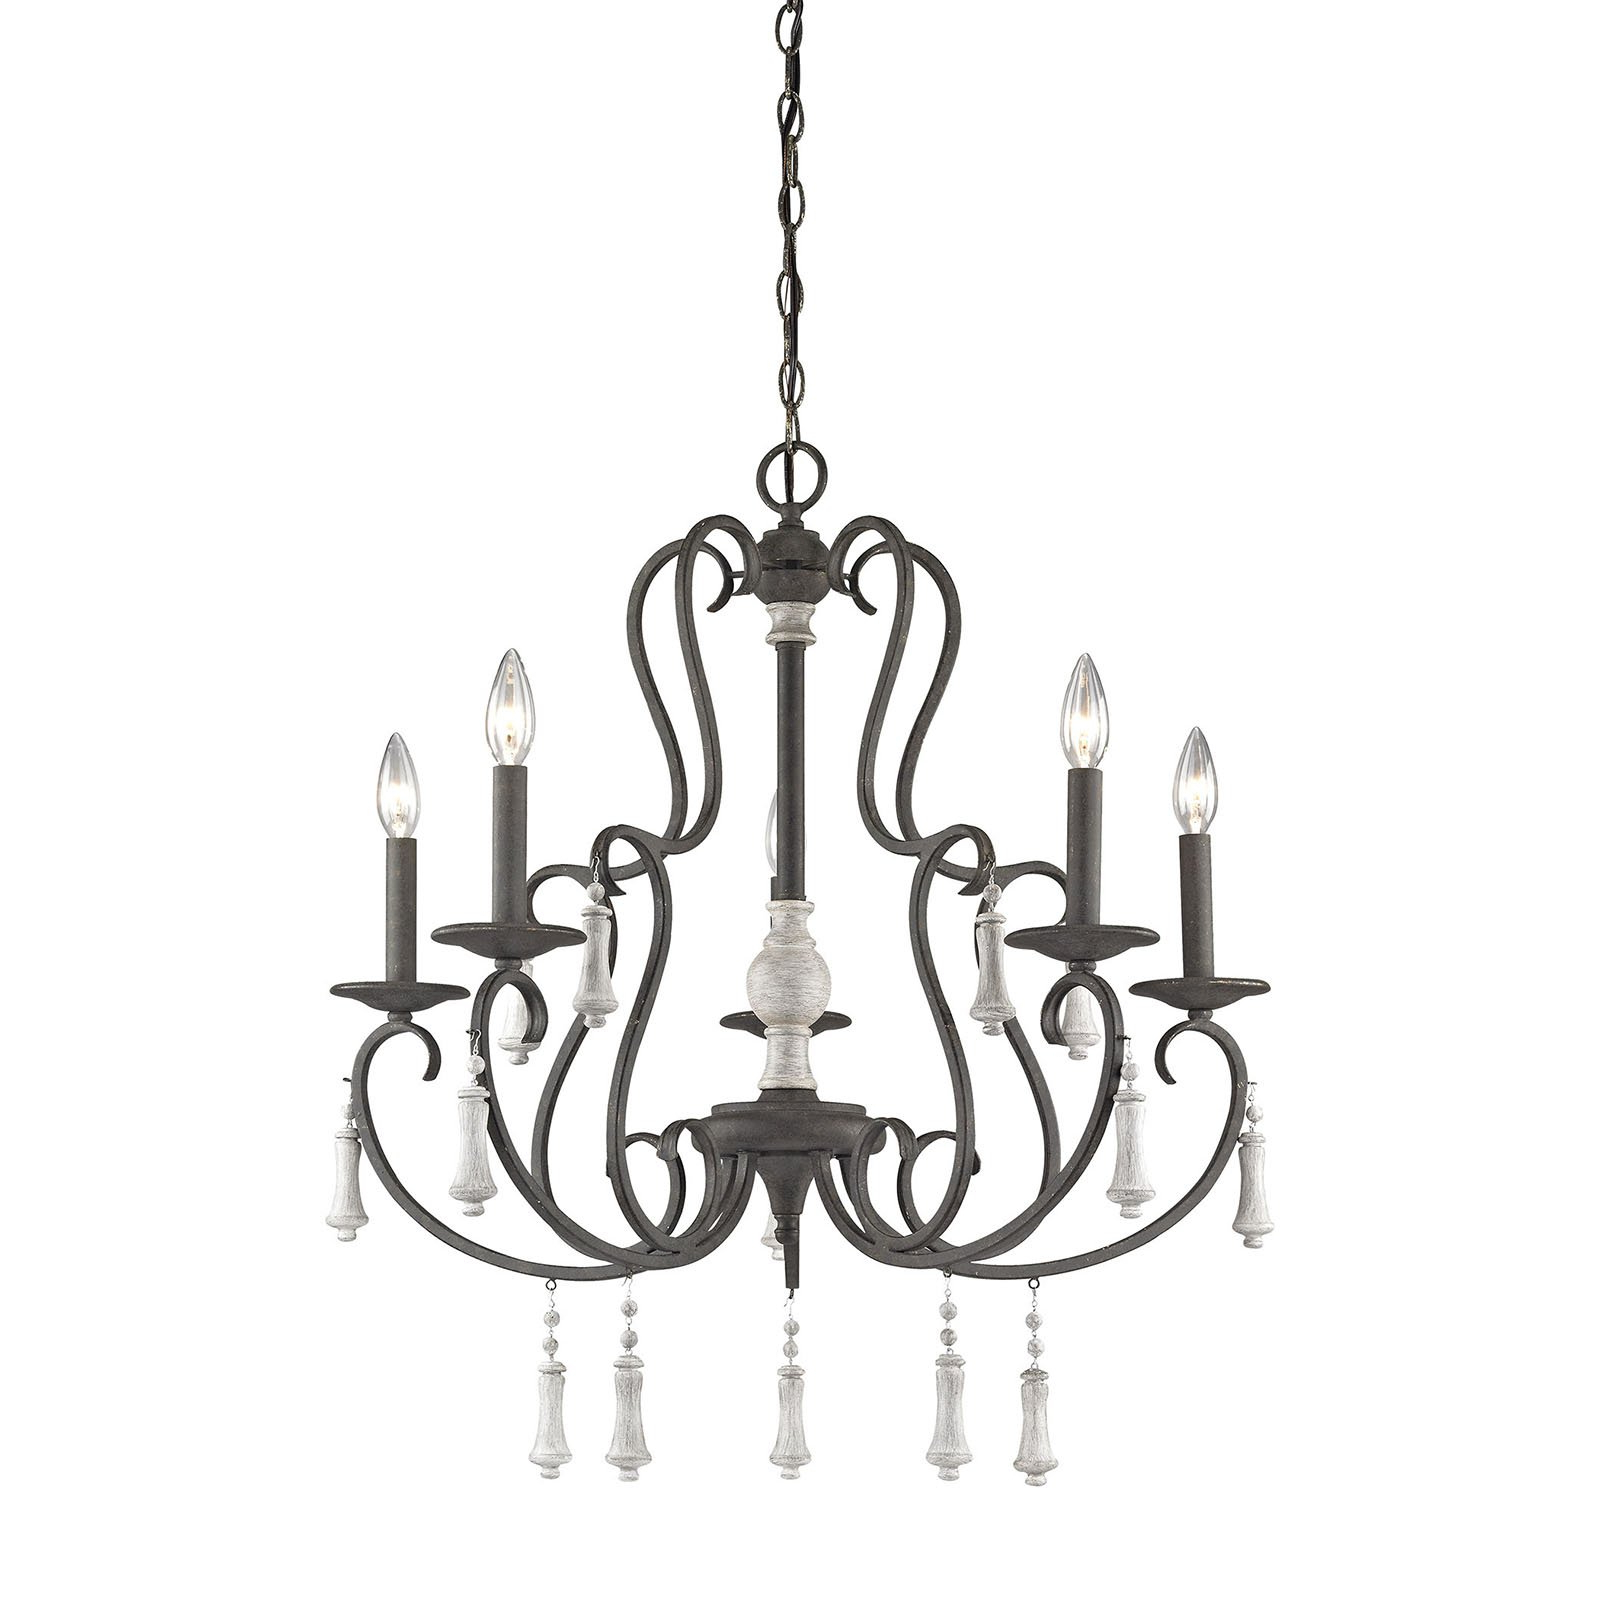 Florentina 5 Light Candle Style Chandeliers Regarding Trendy Elk Lighting Porto Cristo 52022/5 5 Light Chandelier In  (View 21 of 25)